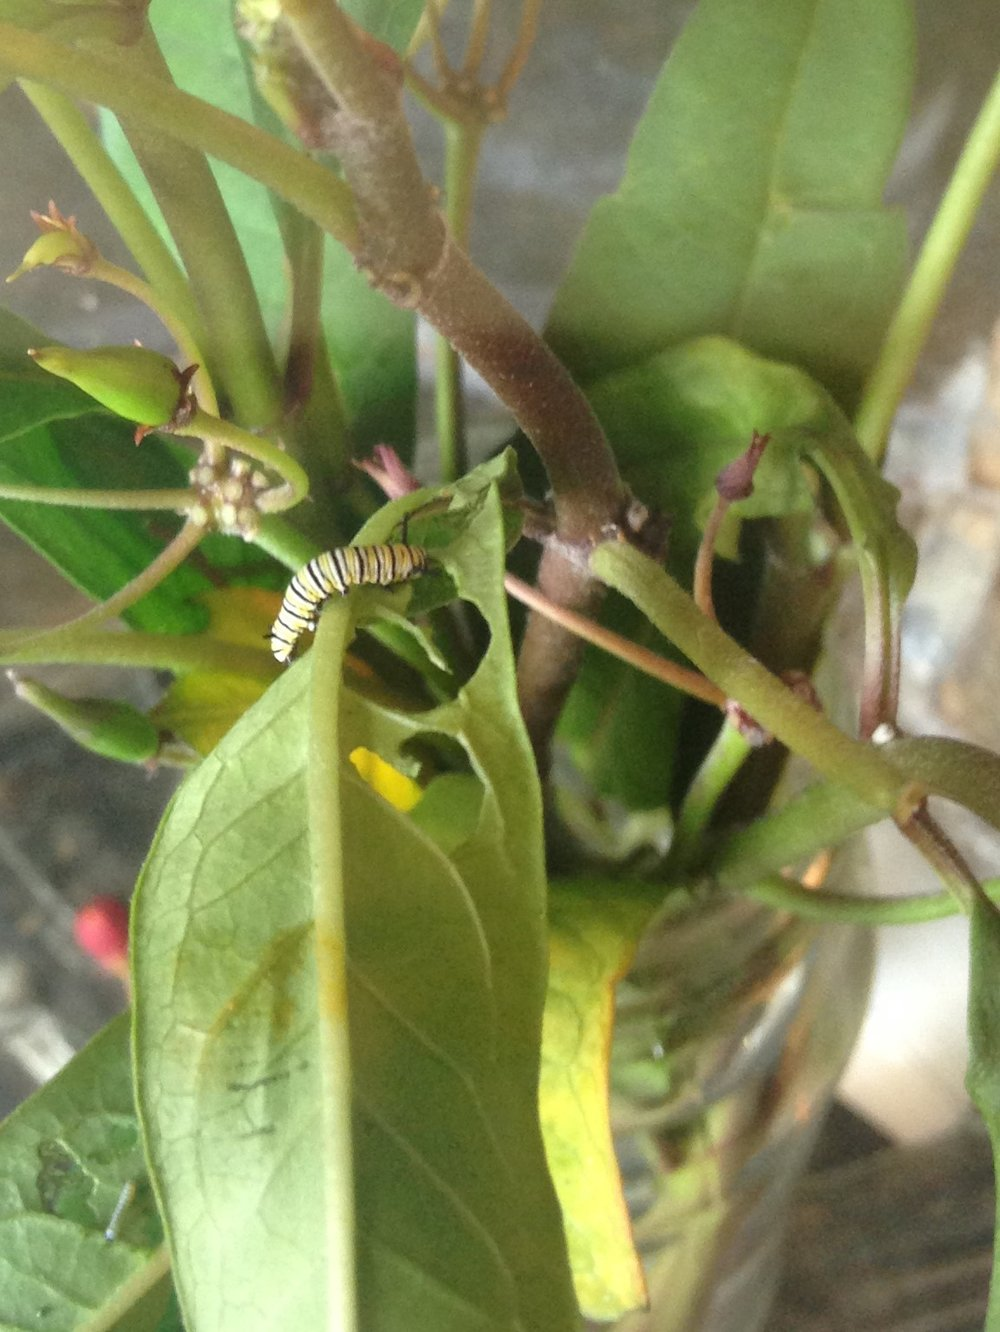 Medium-sized caterpillar